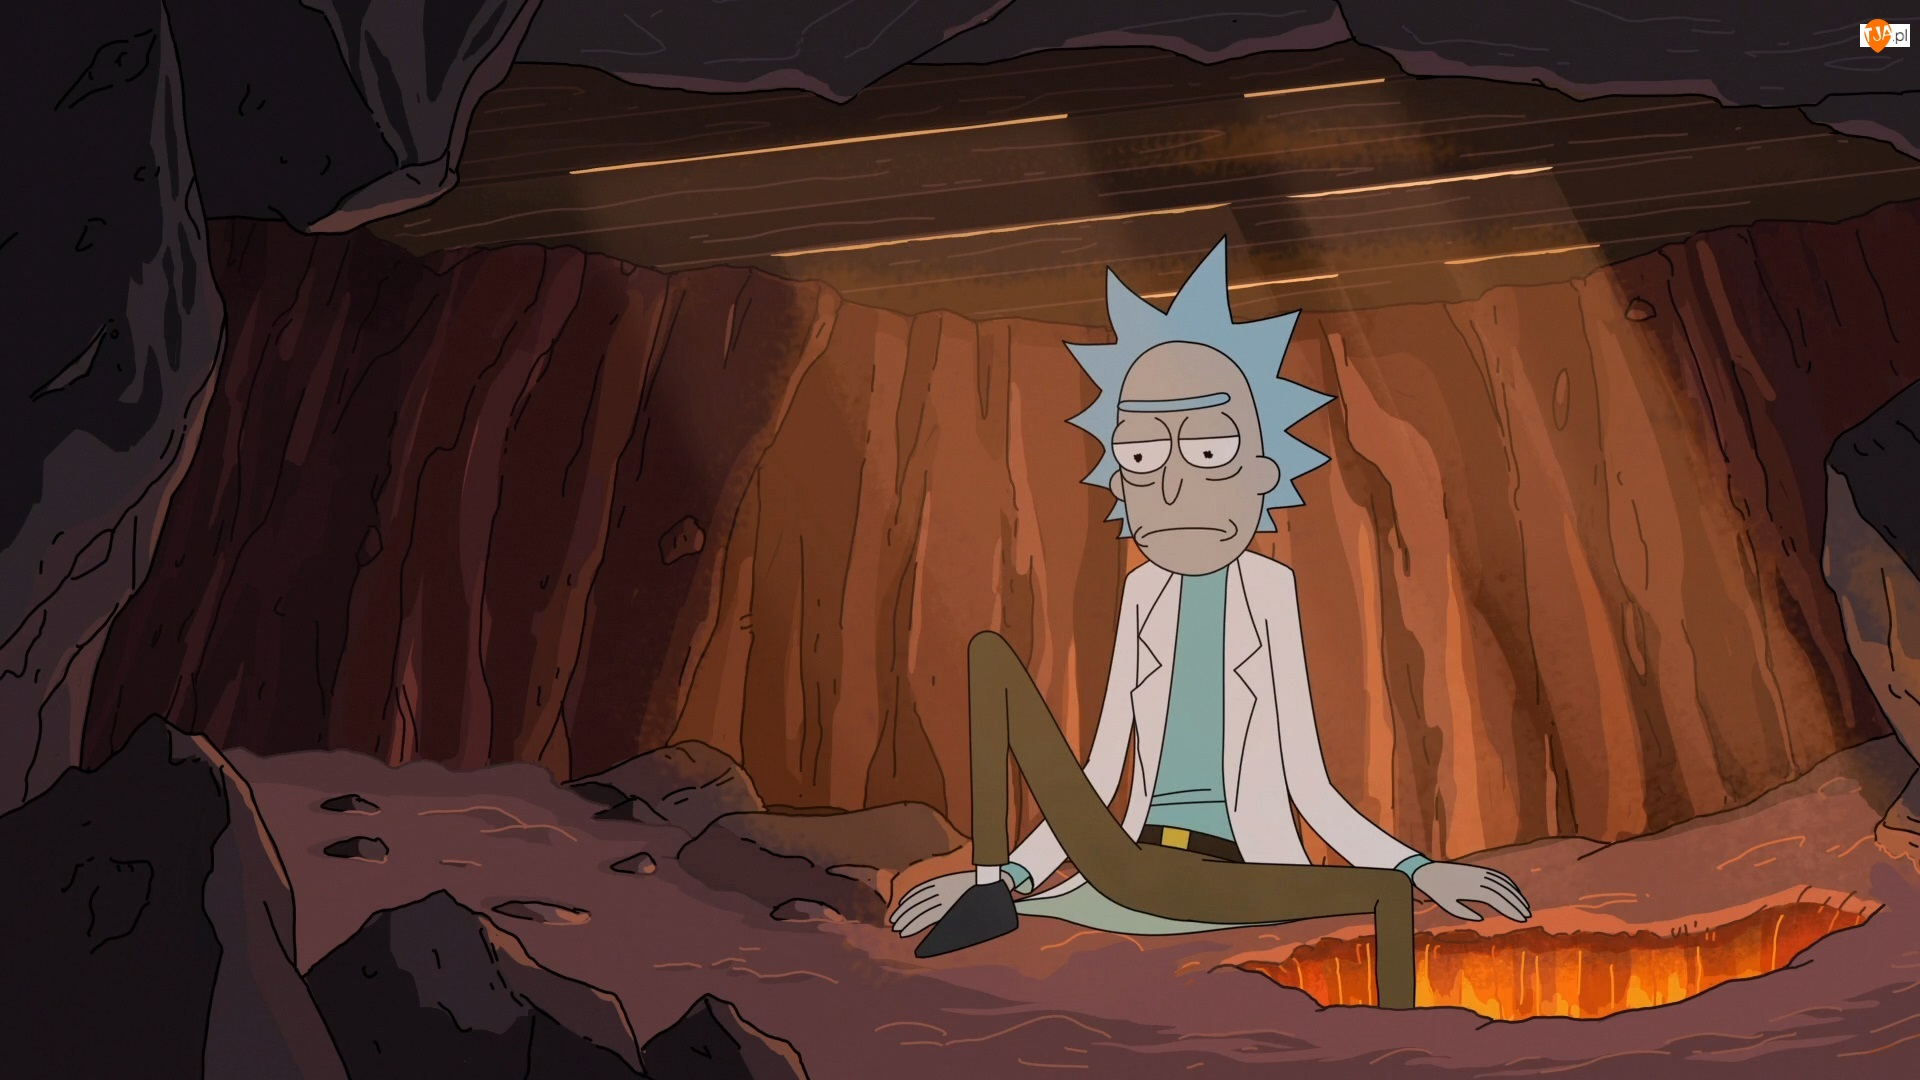 Rick Sanchez, Serial animowany, Rick i Morty